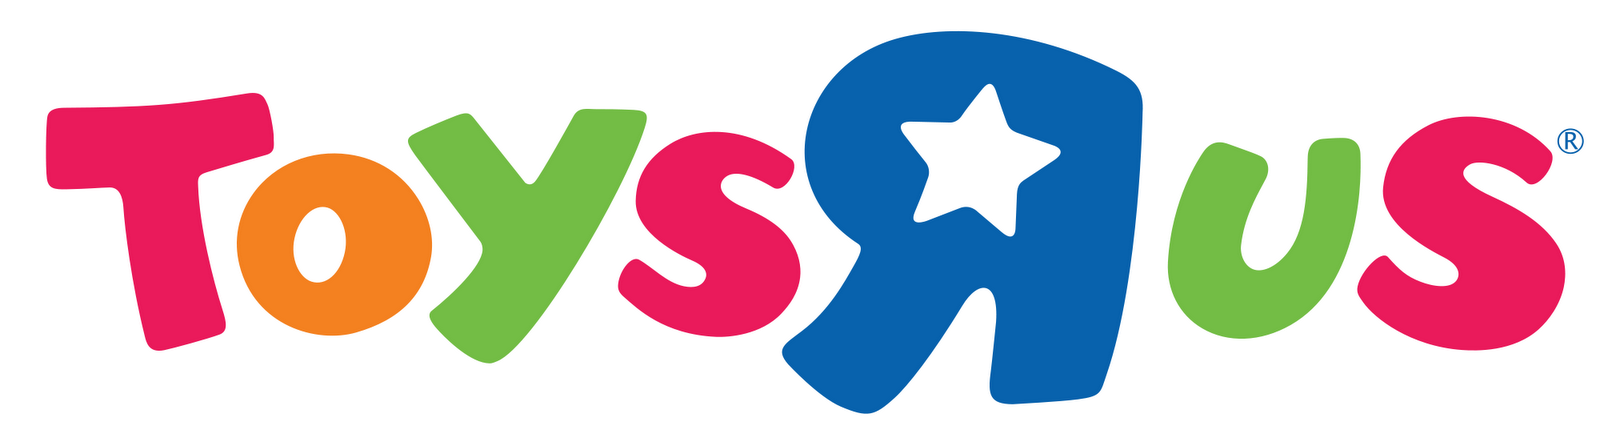 Toys For Tots Logo Eps : Toys 'r us doubling workforce focusing on training for